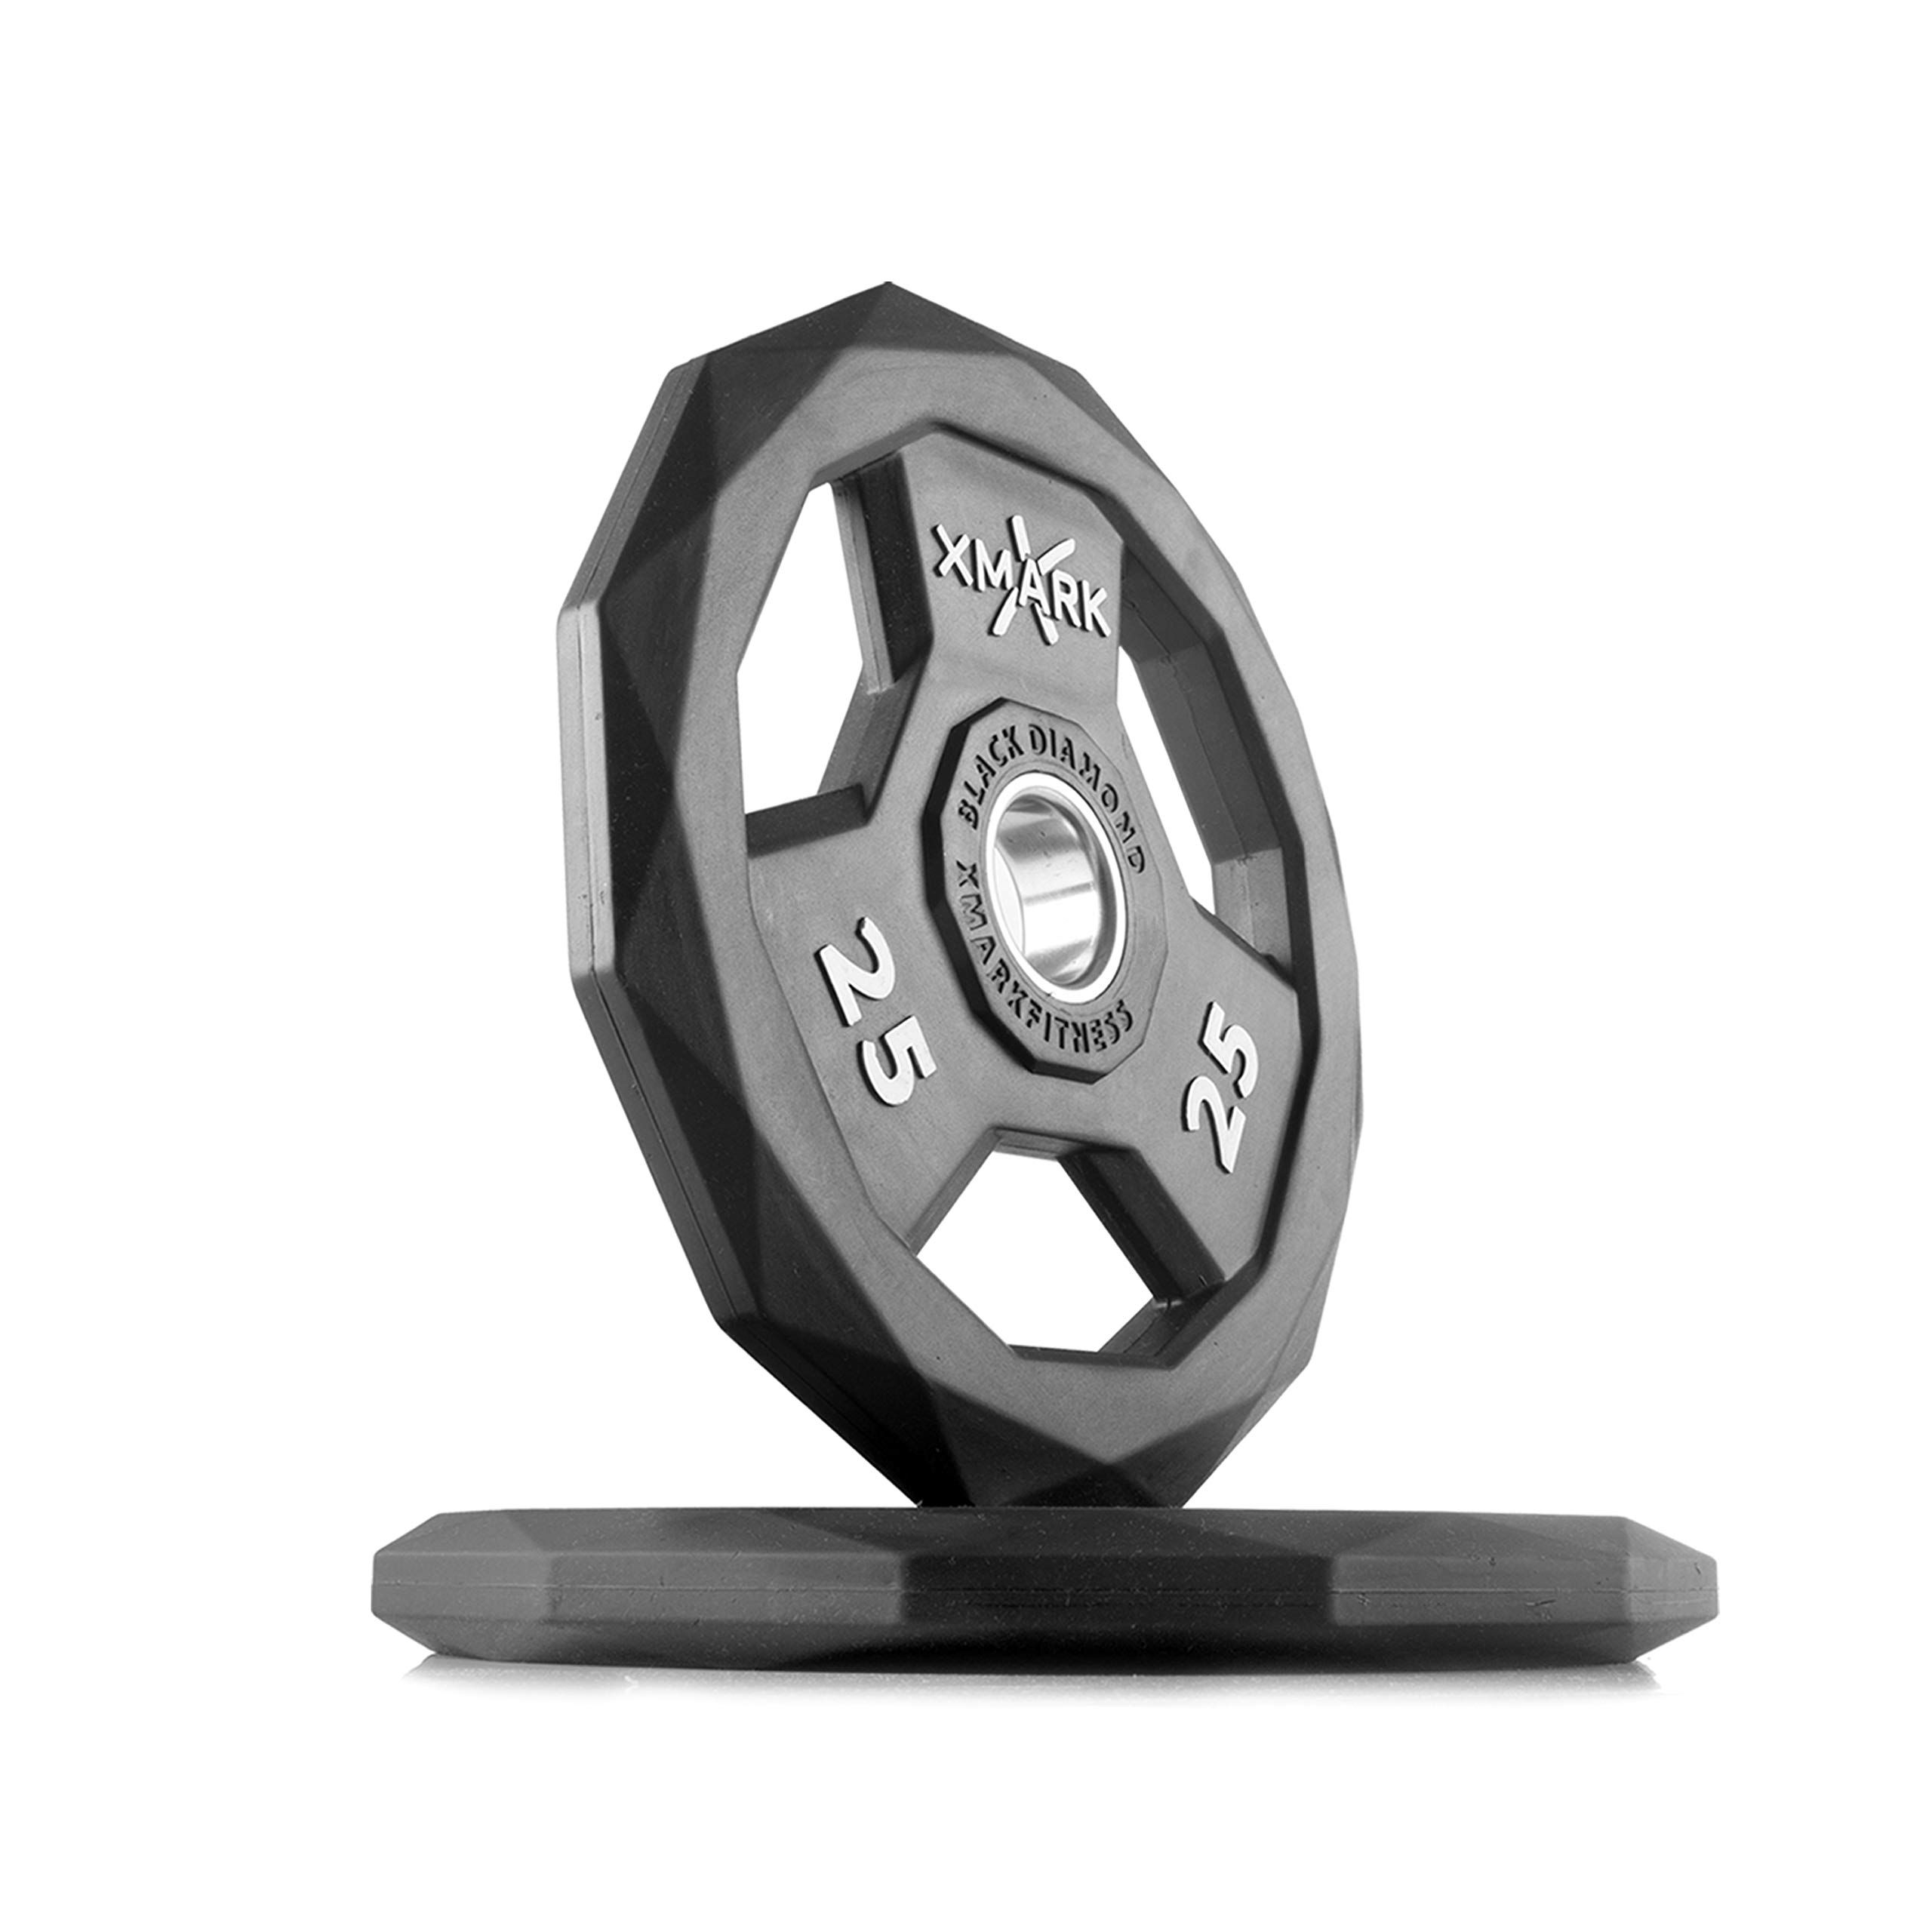 XMark Black Diamond 25 lb Pair Olympic Weight Plates, One-Year Warranty, Patented Design